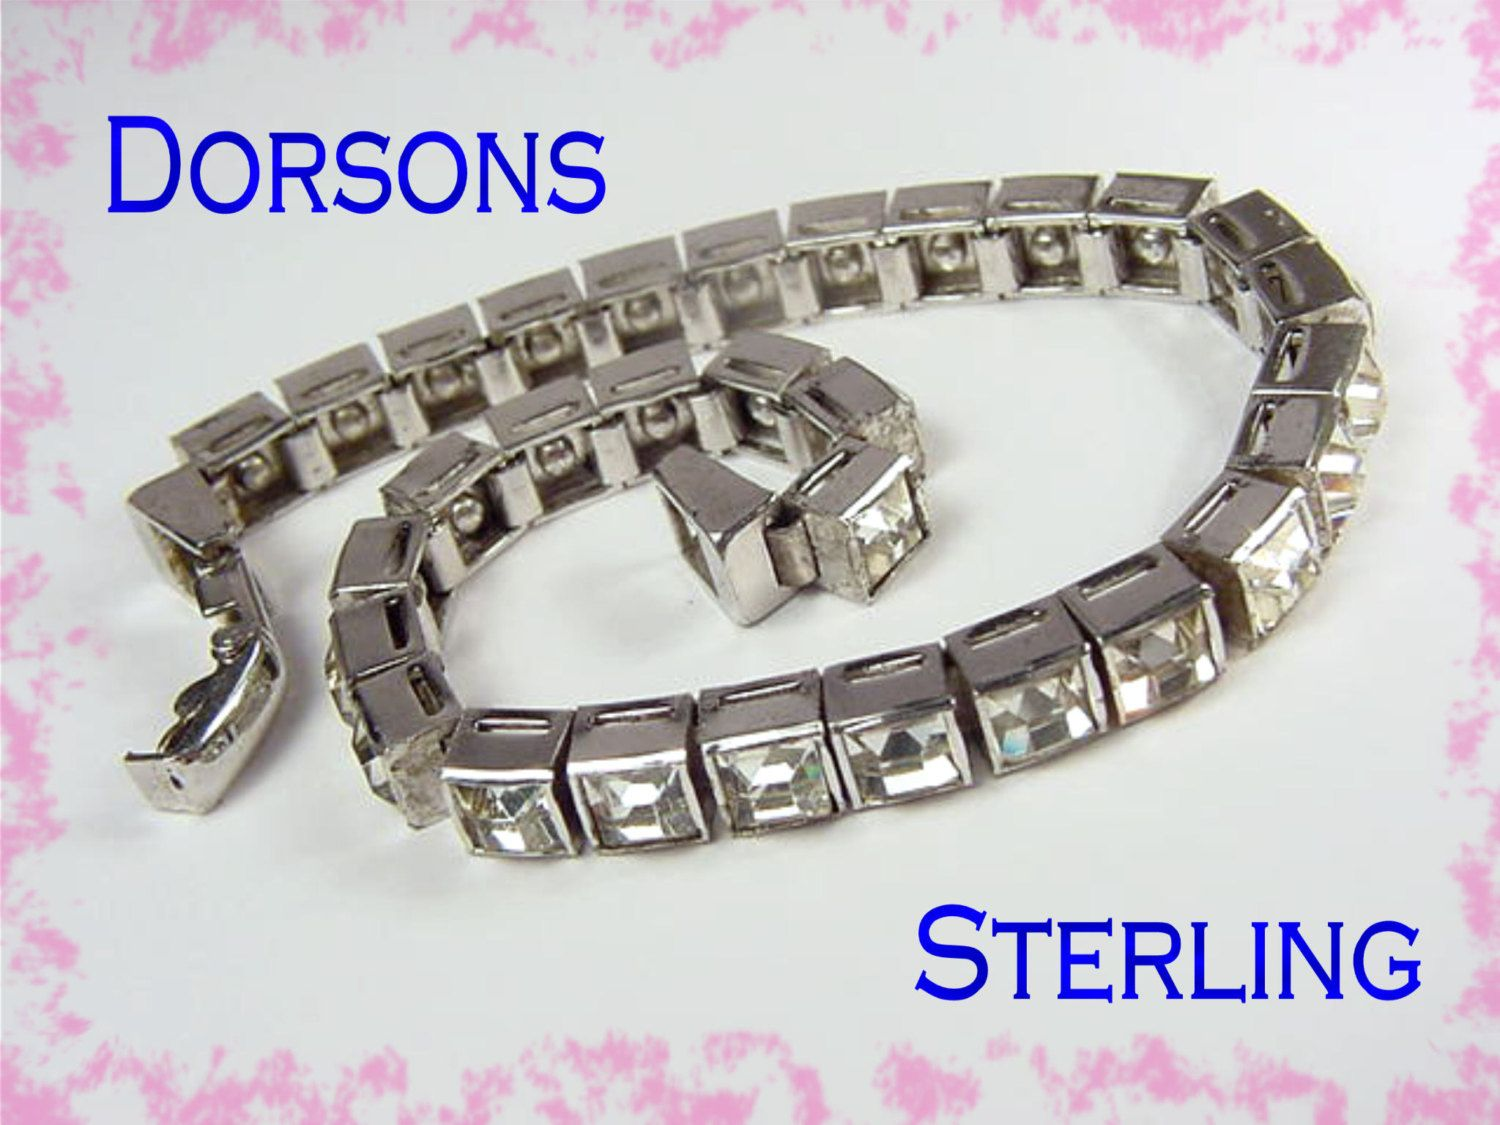 Dorsons - 1940s Sterling Silver - Art Deco Channel Set Princess Cut Crystal Paste Bracelet - Estate Antique Treasure - FREE SHIPPING